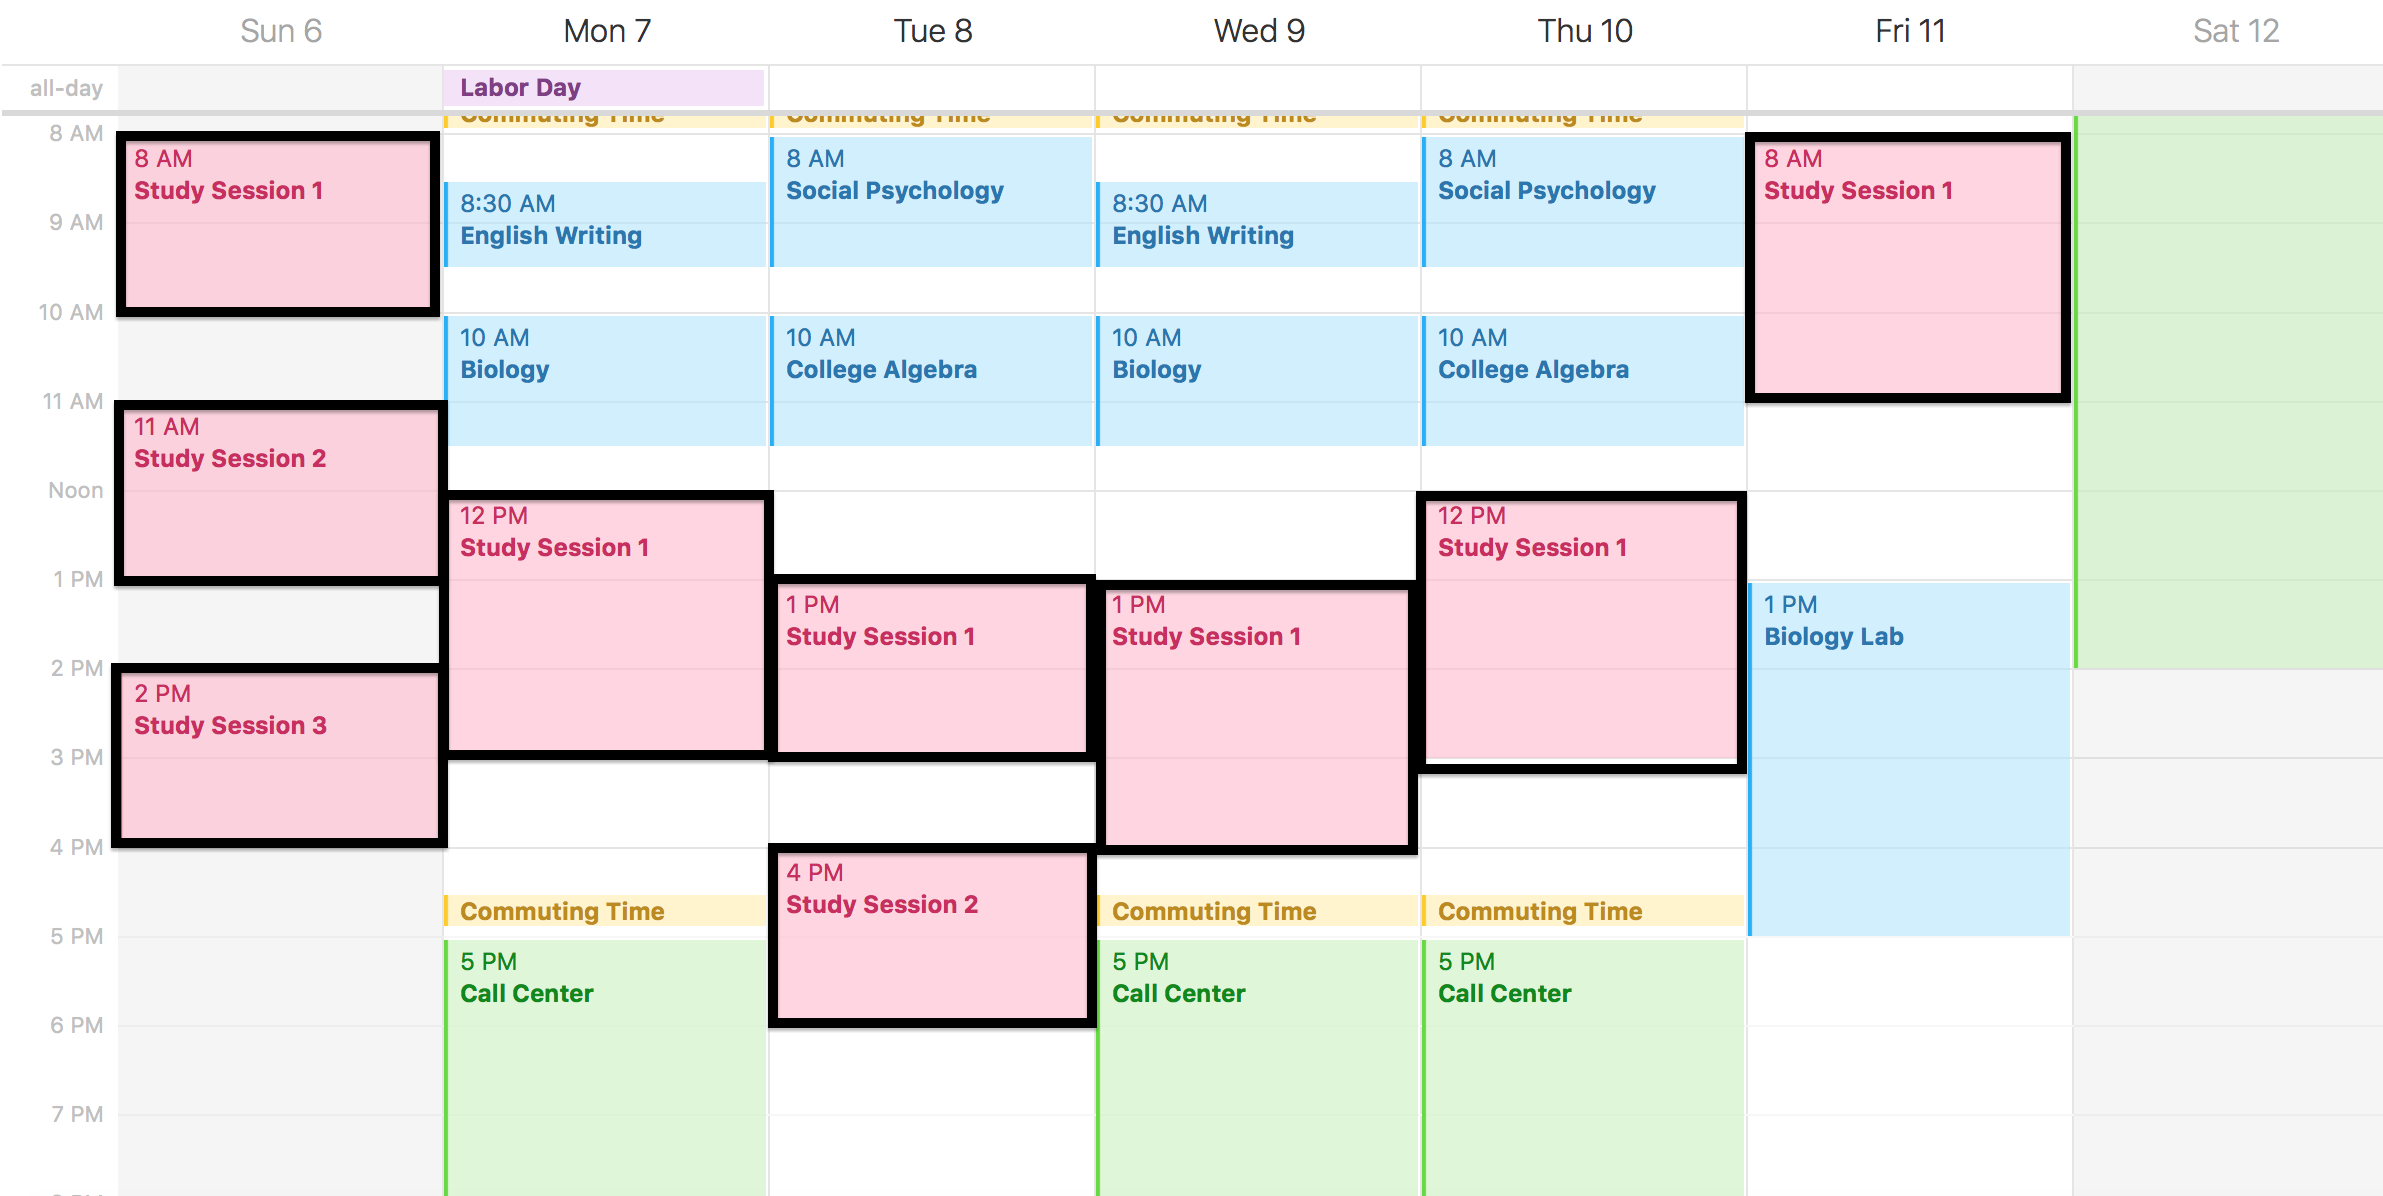 Study Schedule Template - 5 Free Templates - Schedule ...